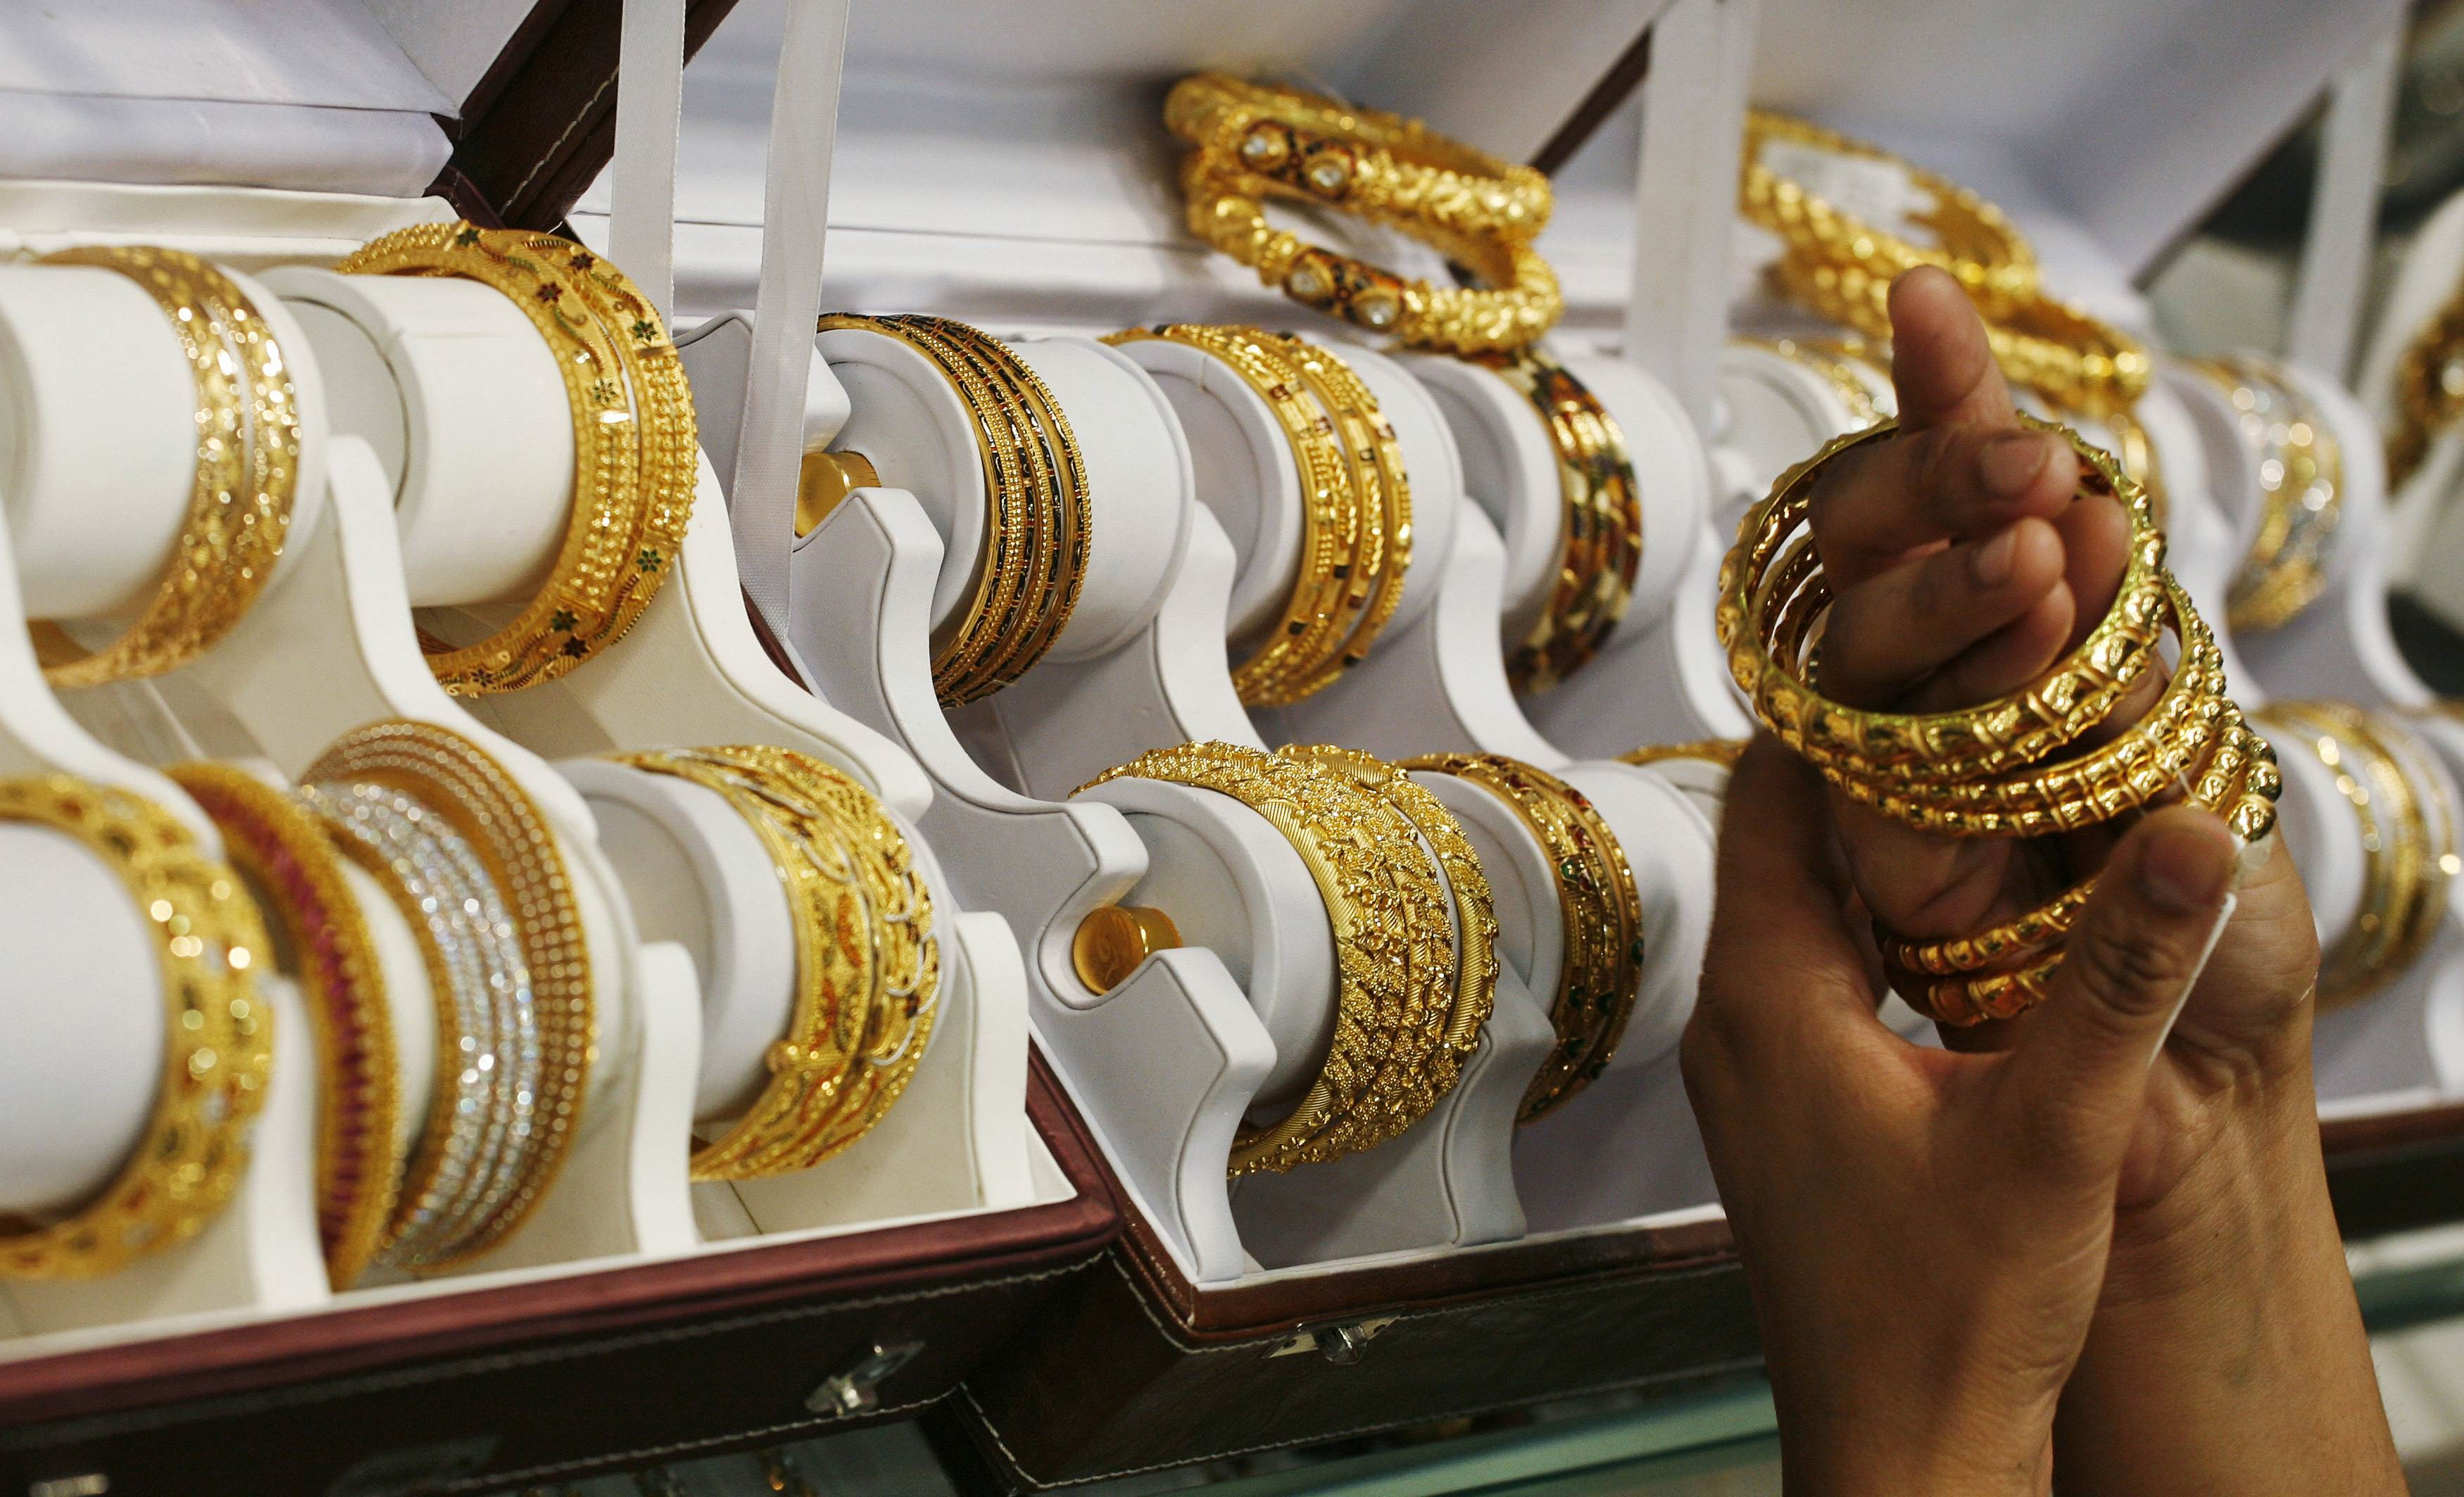 A customer tries gold bangles inside a jewellery showroom at Noida in the northern Indian state of Uttar Pradesh in this April 21, 2011 file photo. India's passion for gold is putting such a strain on state finances that the government may slap higher import taxes on the precious metal, but demand buoyed by heady inflation and meagre savings will blunt the impact of any rise in duties as reported January 16, 2013.  REUTERS/Parivartan Sharma/Files (INDIA - Tags: BUSINESS COMMODITIES)